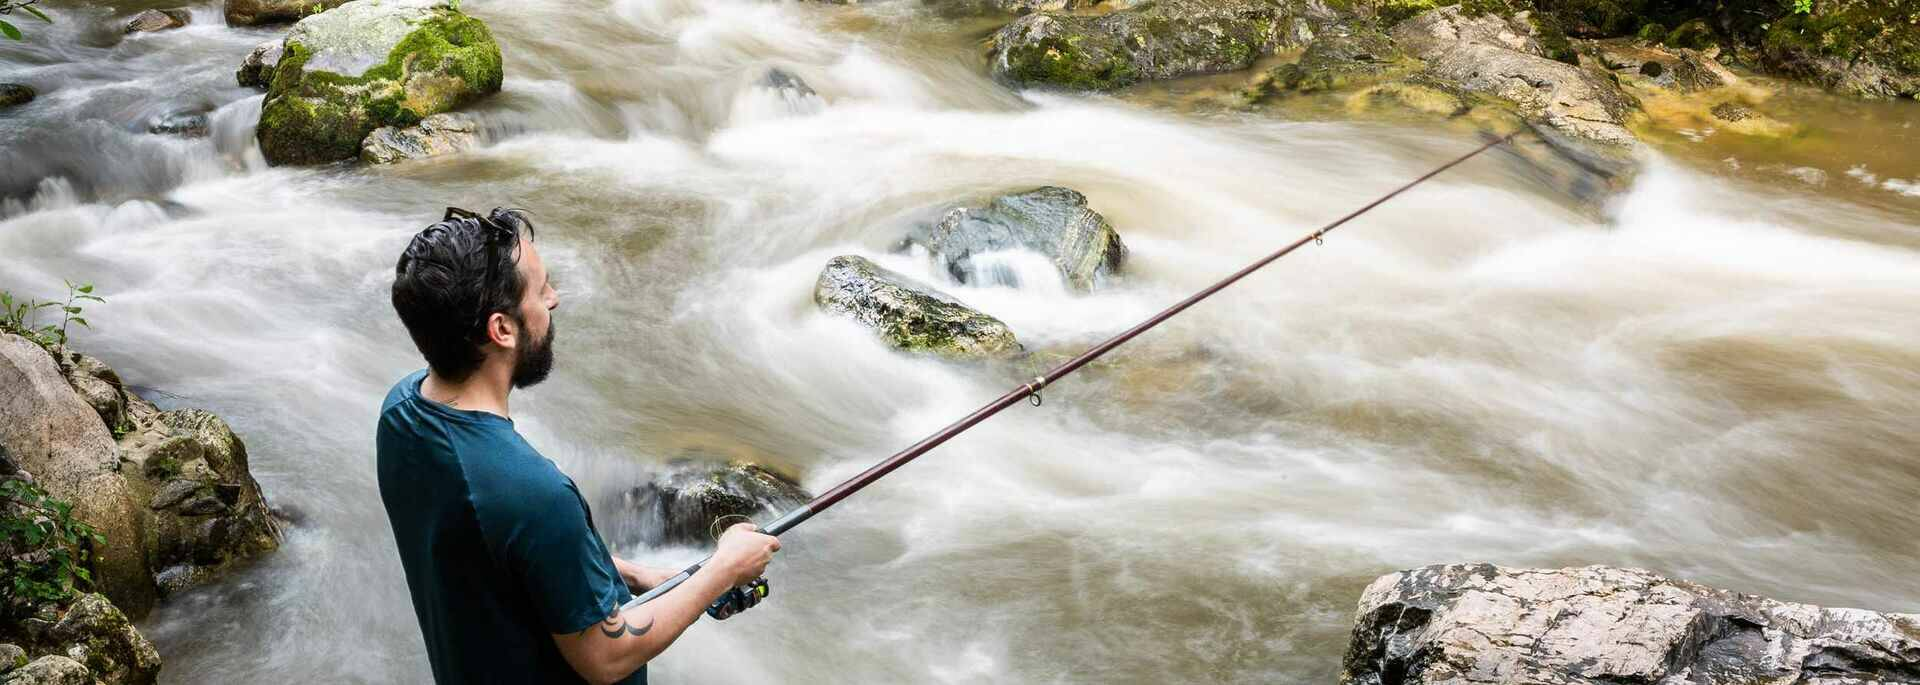 fishing in conflent